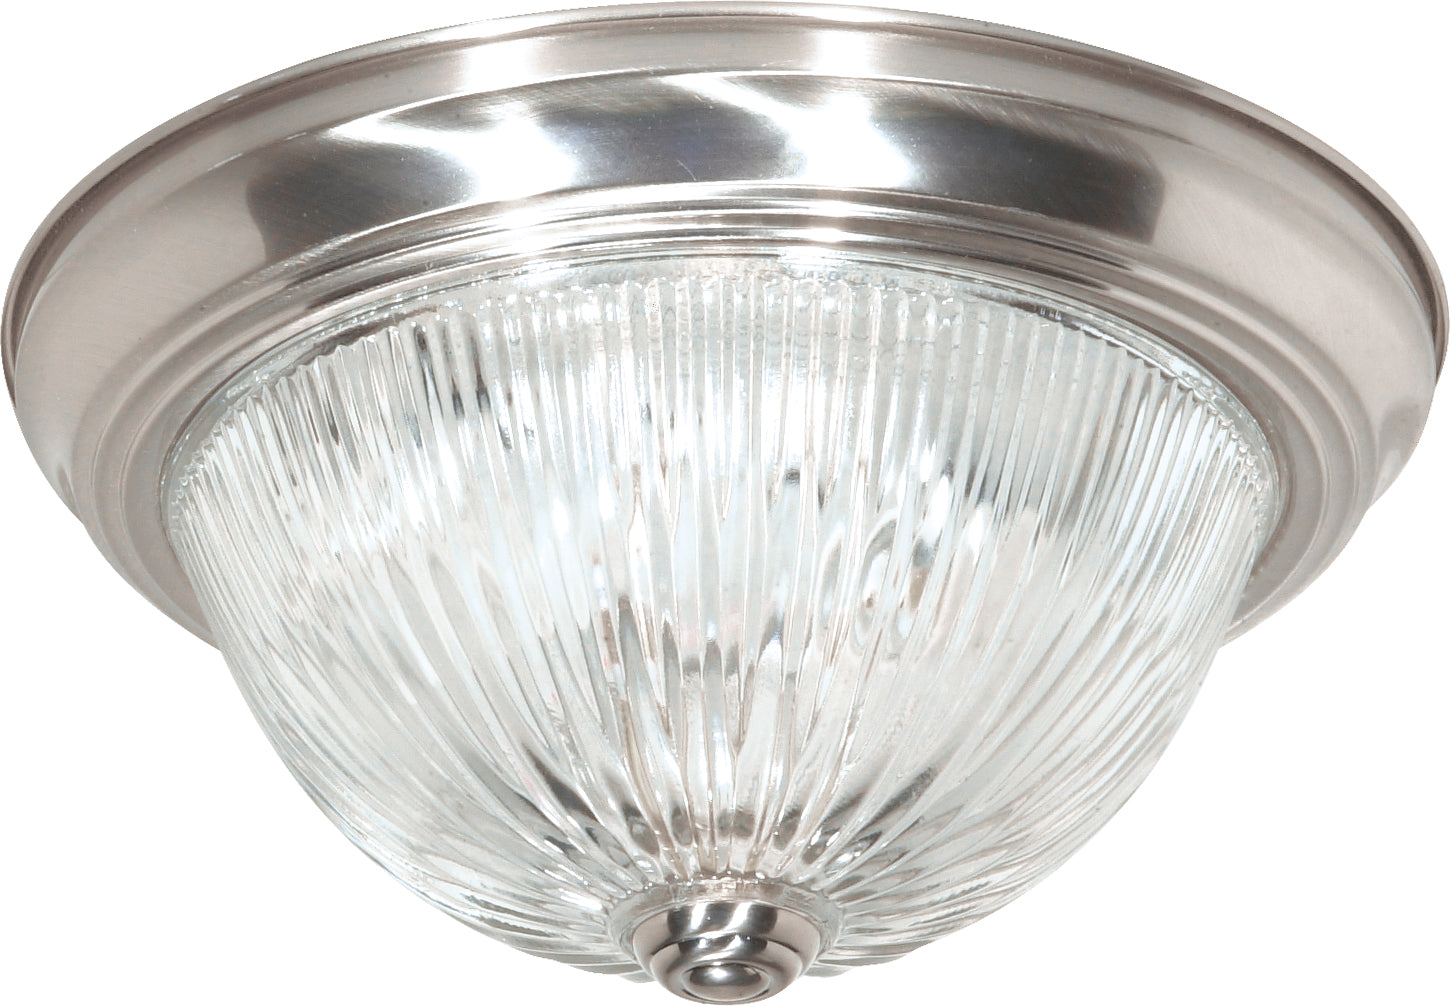 """Nuvo 2-Light 13"""" Flush Mount Fixture w/ Clear Ribbed Glass in Brushed Nickel"""